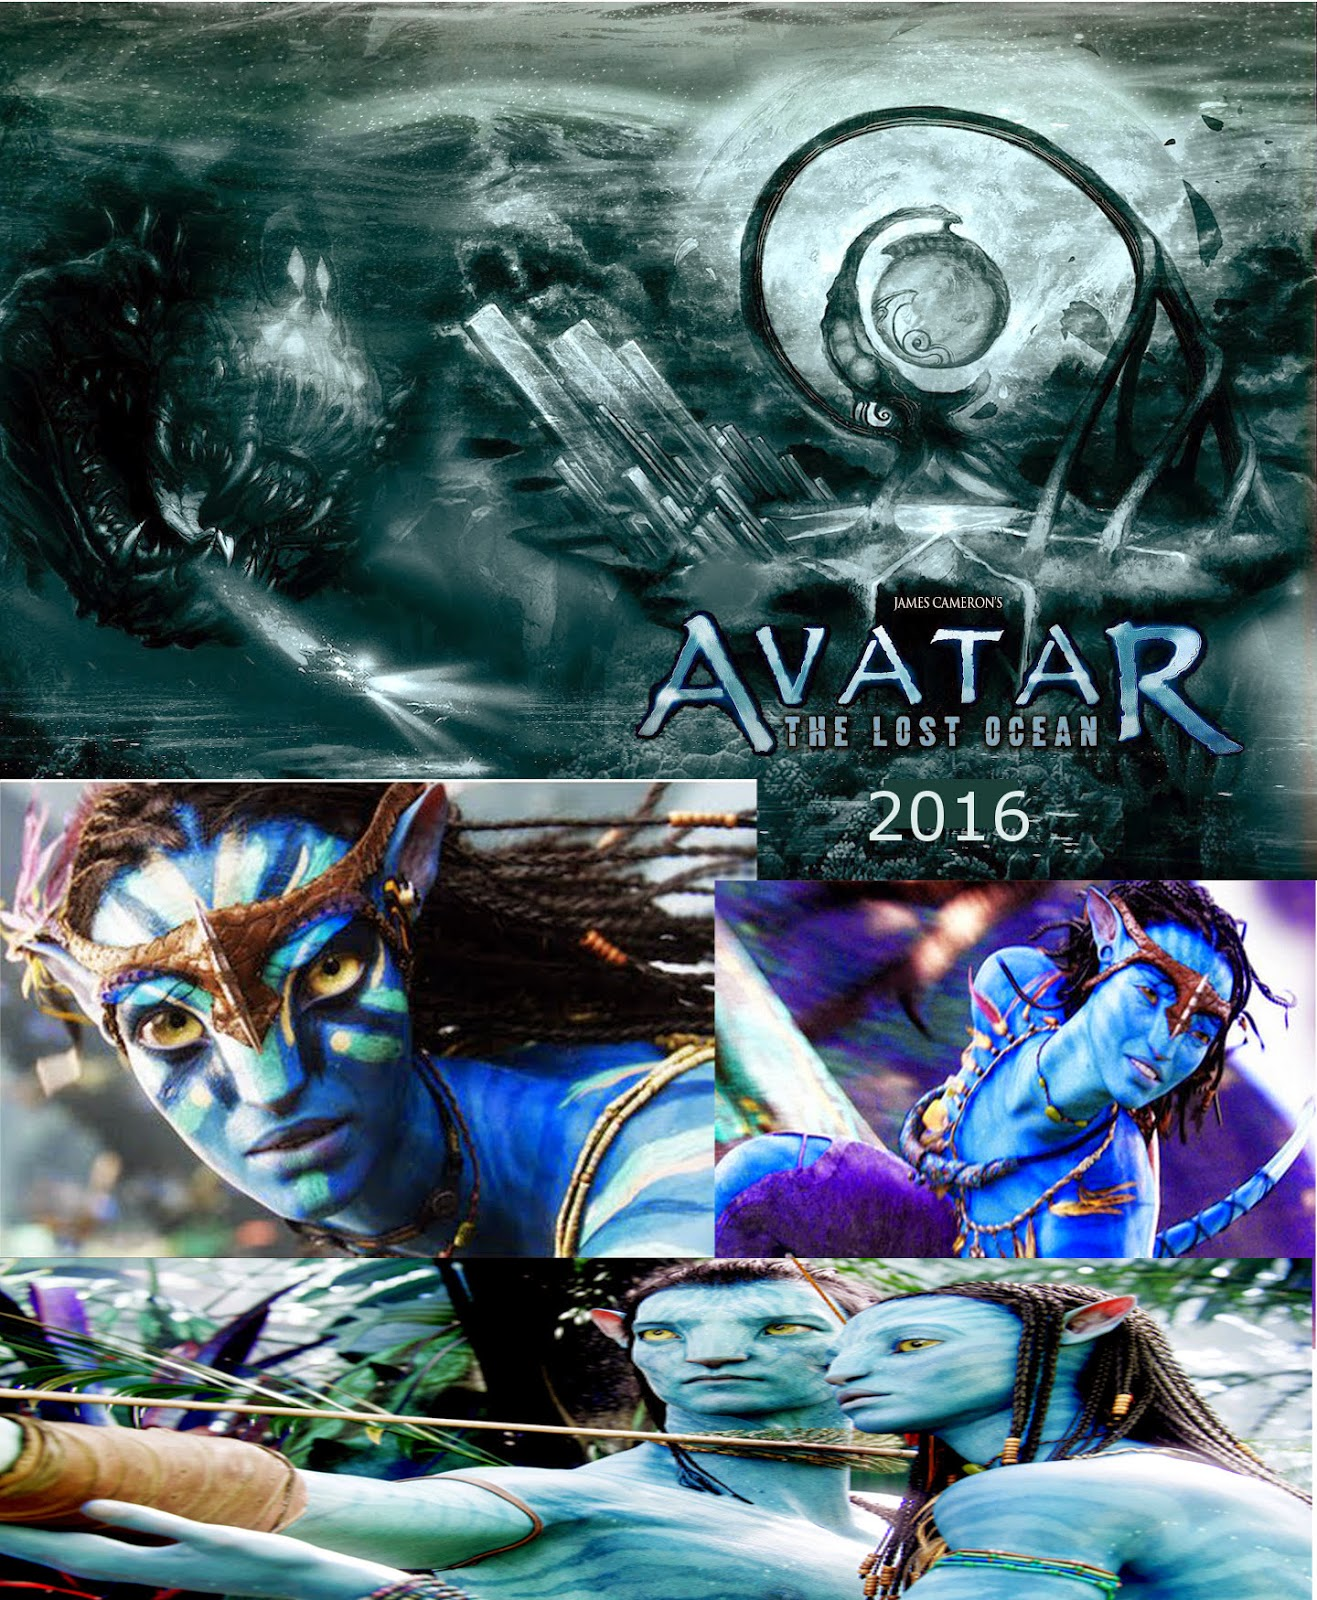 Avatar 2 Trailer The Lost Ocean: HollywooD UpcominG MovieS: July 2014